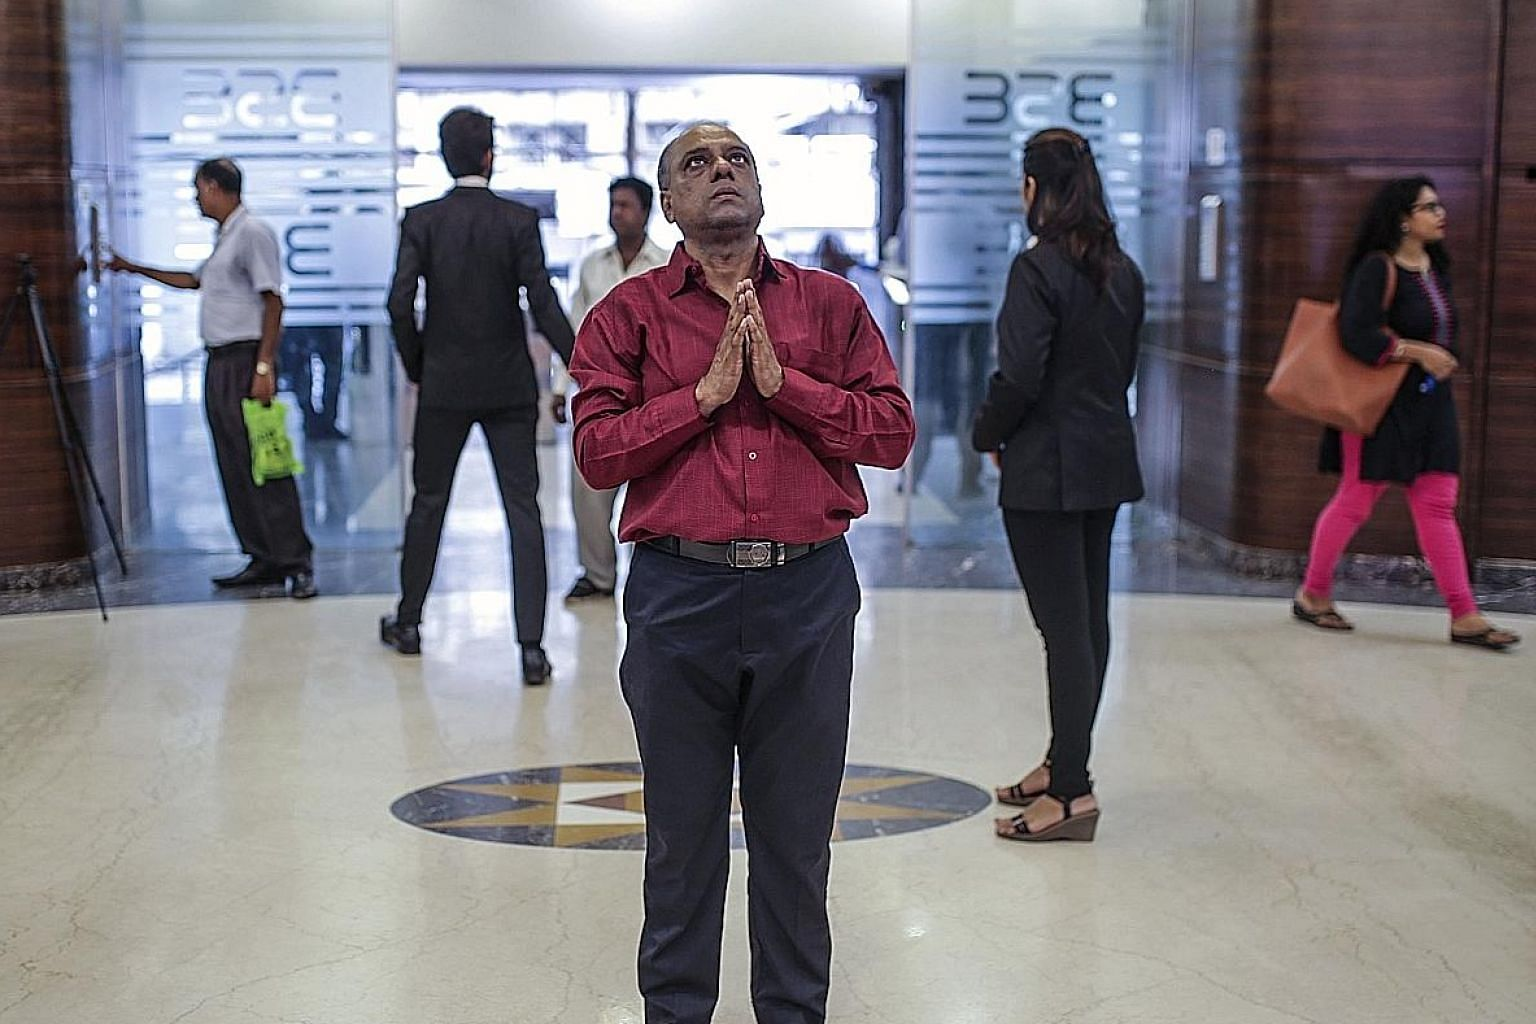 A man praying to a deity on display at the Bombay Stock Exchange building in Mumbai. The exchange's Sensex index had its biggest one-day gain in nearly six years to close at a record high, while the rupee strengthened against the US dollar.